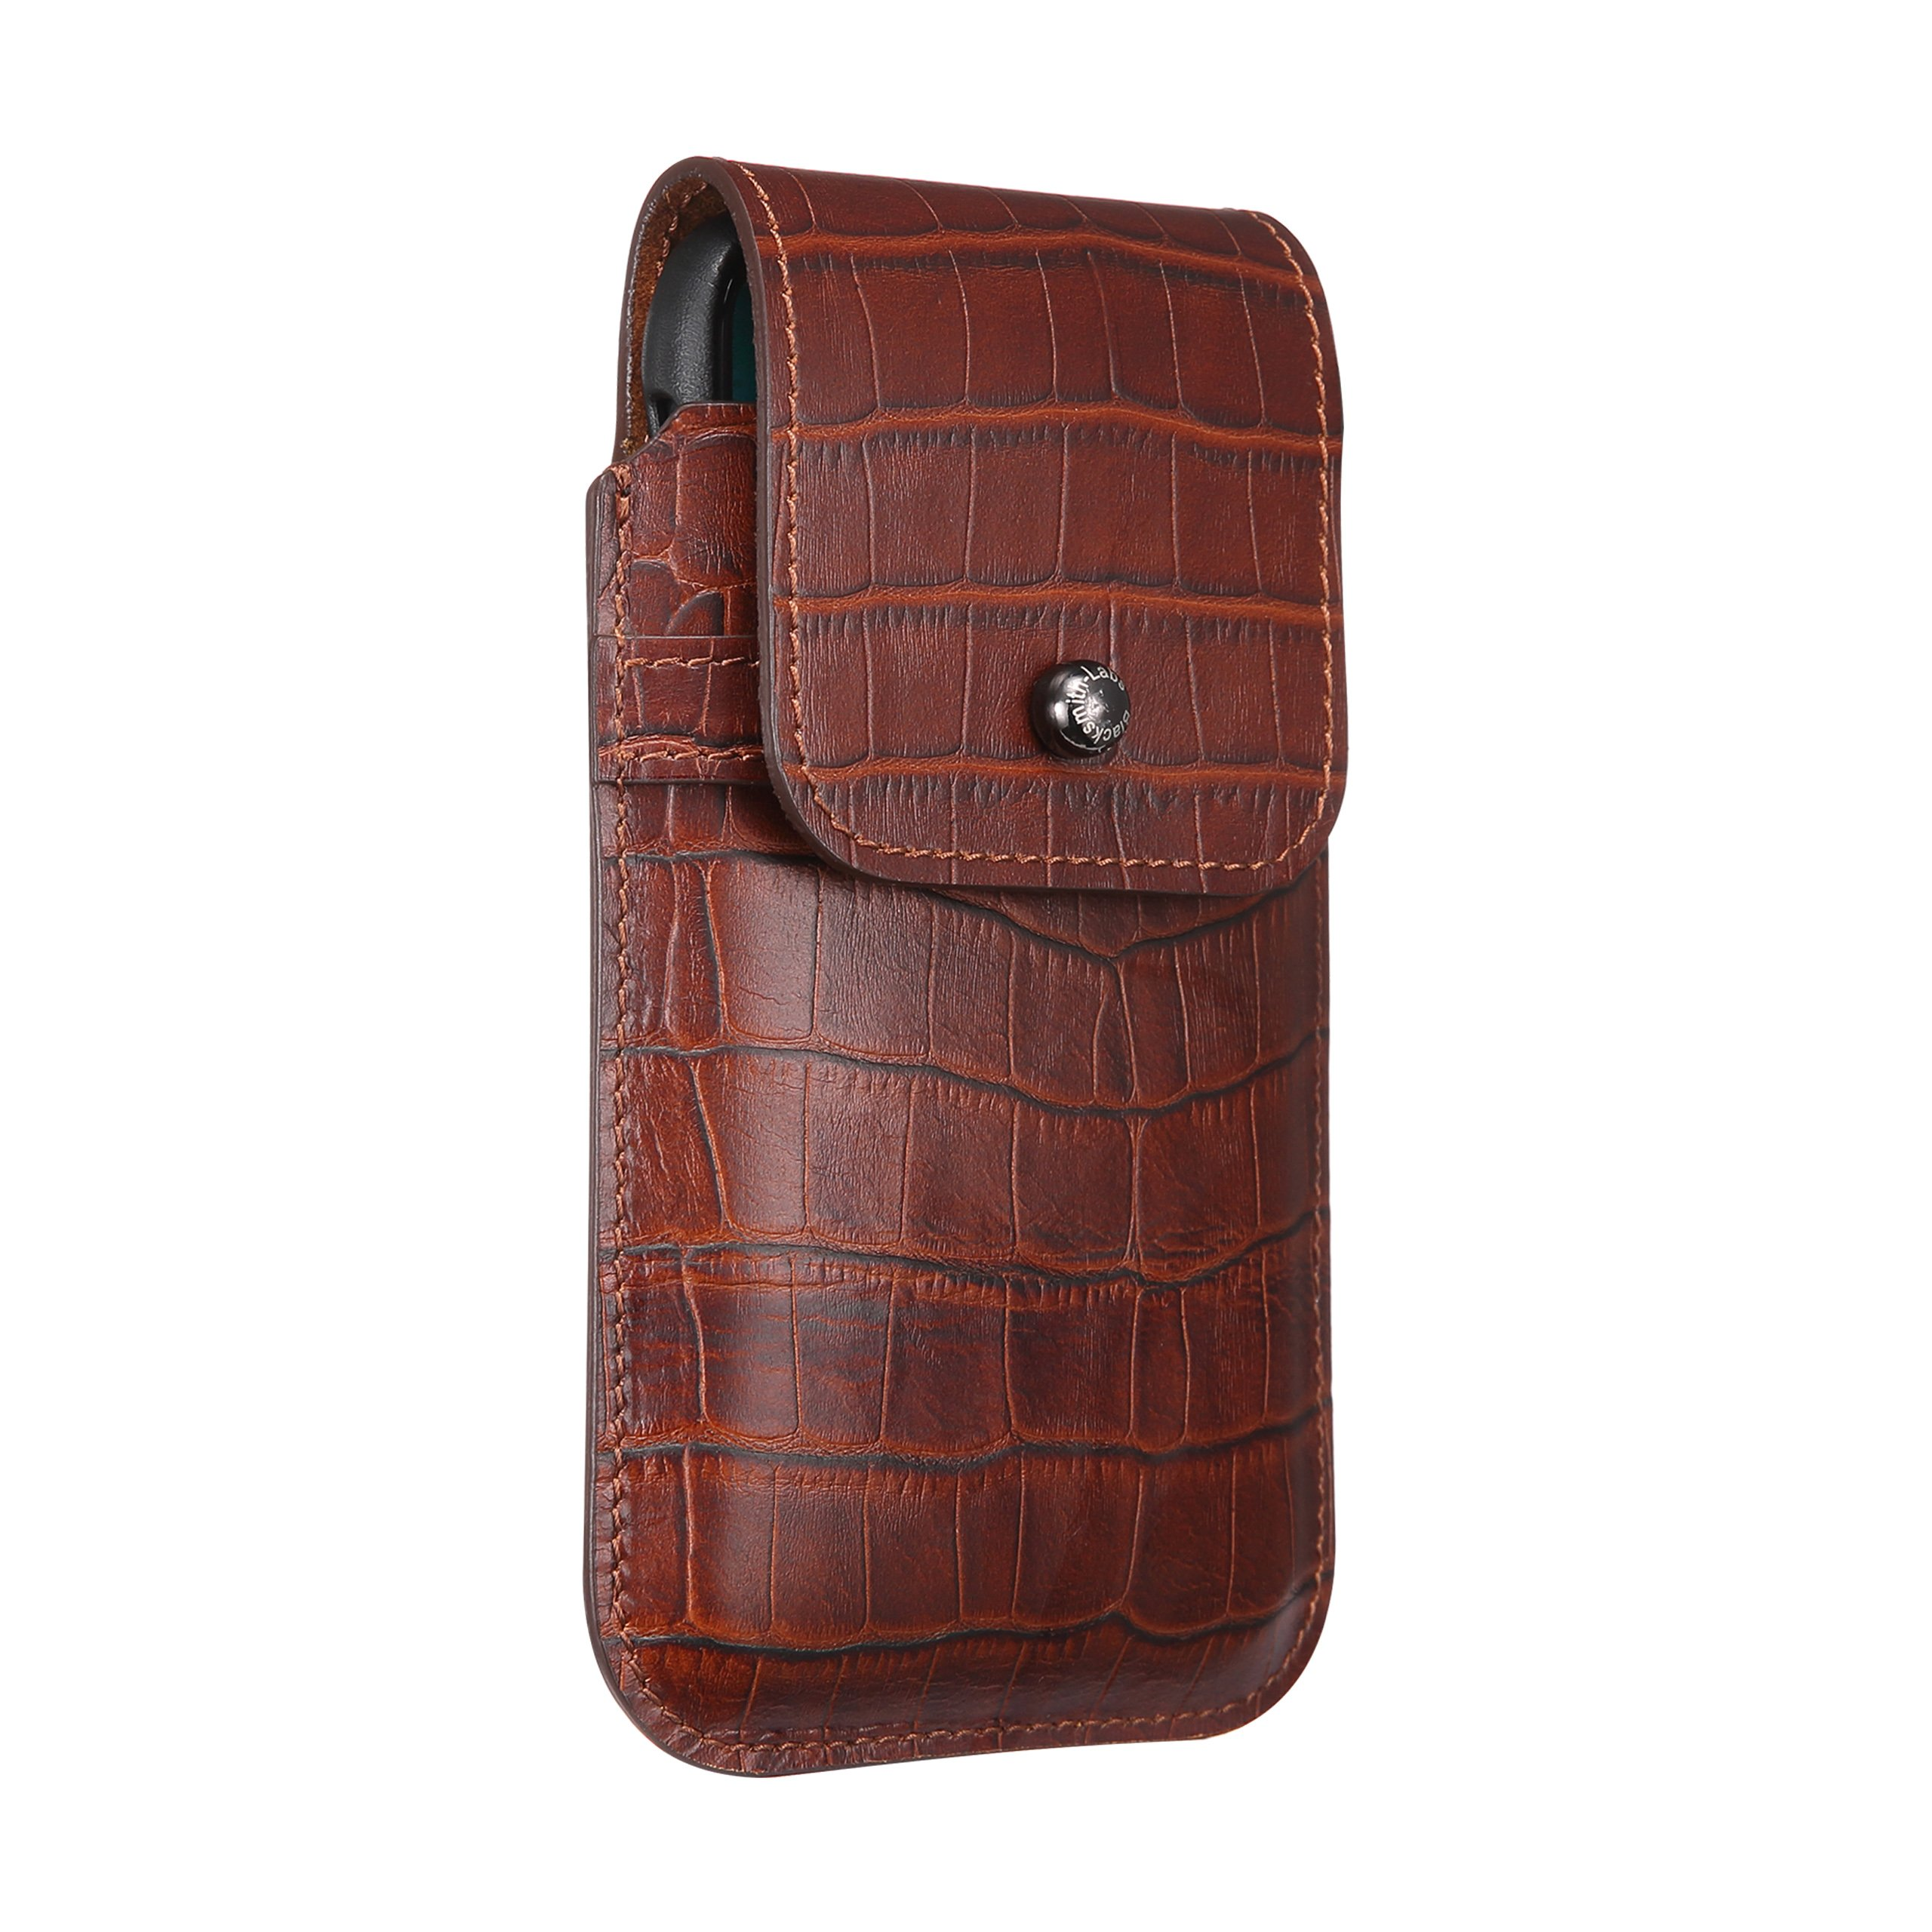 Blacksmith-Labs Barrett Mezzano 2017 Premium Oversized Genuine Leather Swivel Belt Clip Holster for Apple iPhone X/Xs for use w Apple Leather Case Rustic Brown Croc Embossed Cowhide Gunmetal Belt Clip